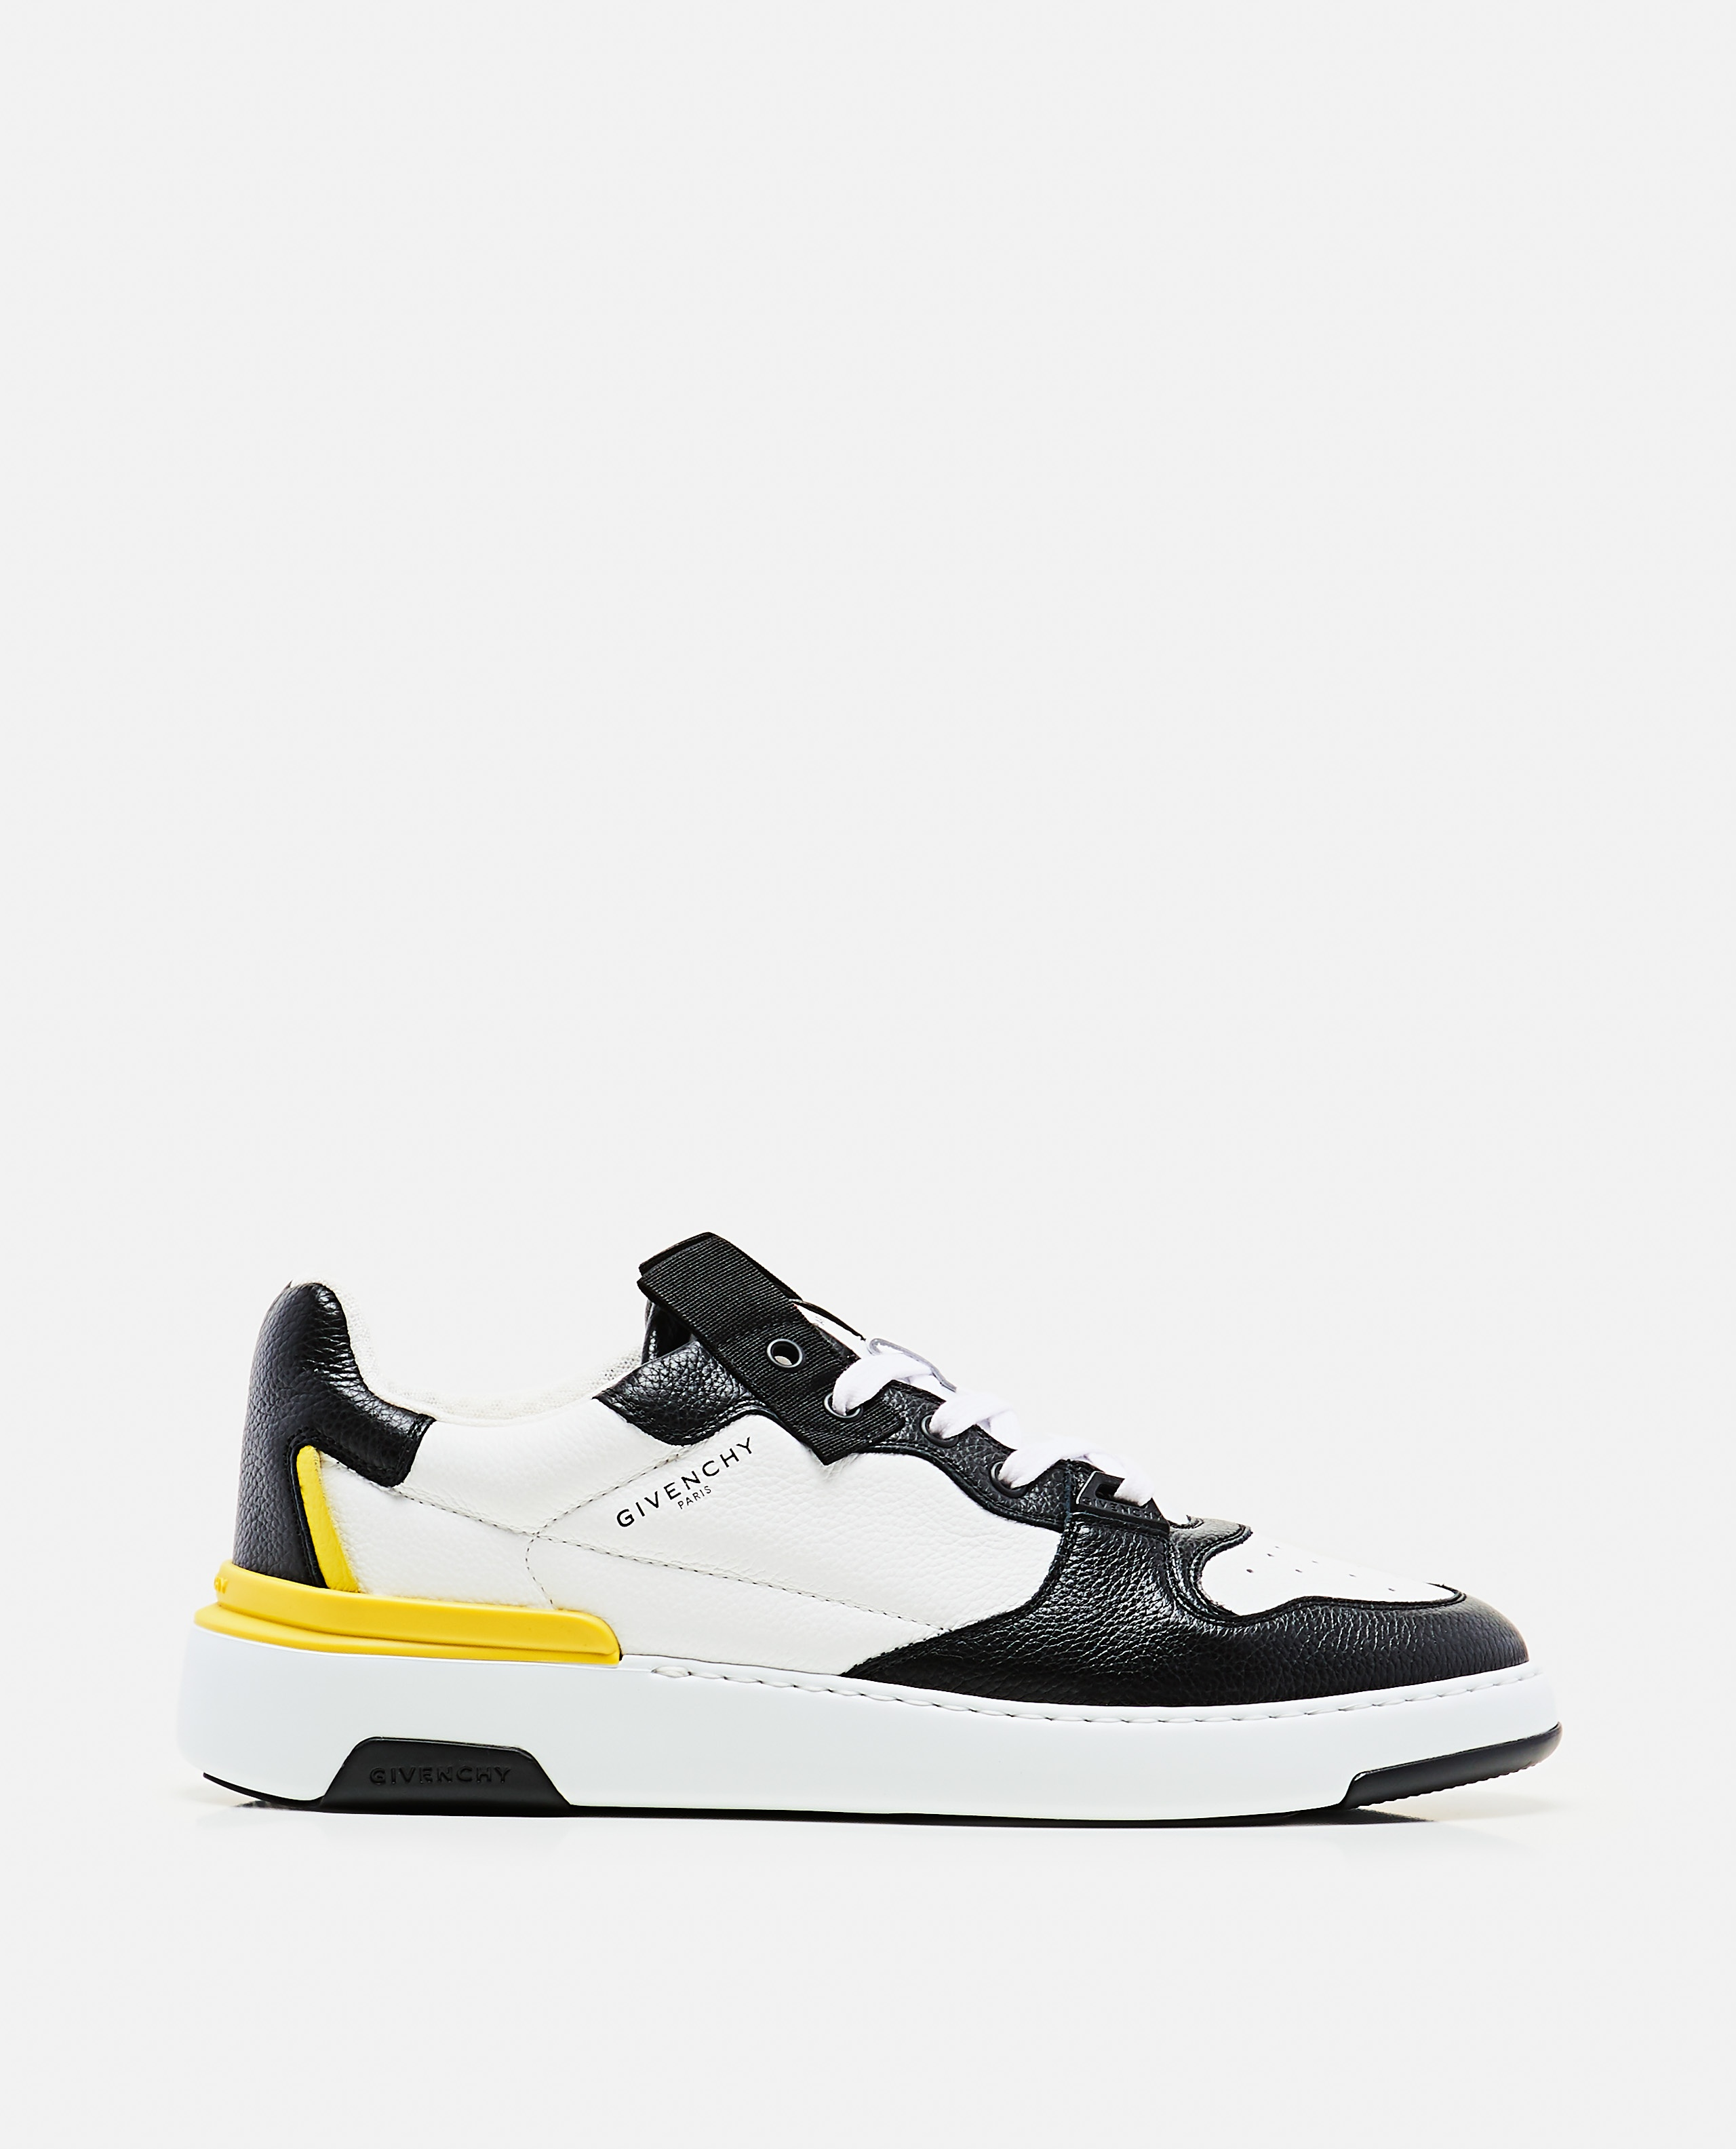 Sneakers WING SNEAKER LOW Men Givenchy 000253290037418 1